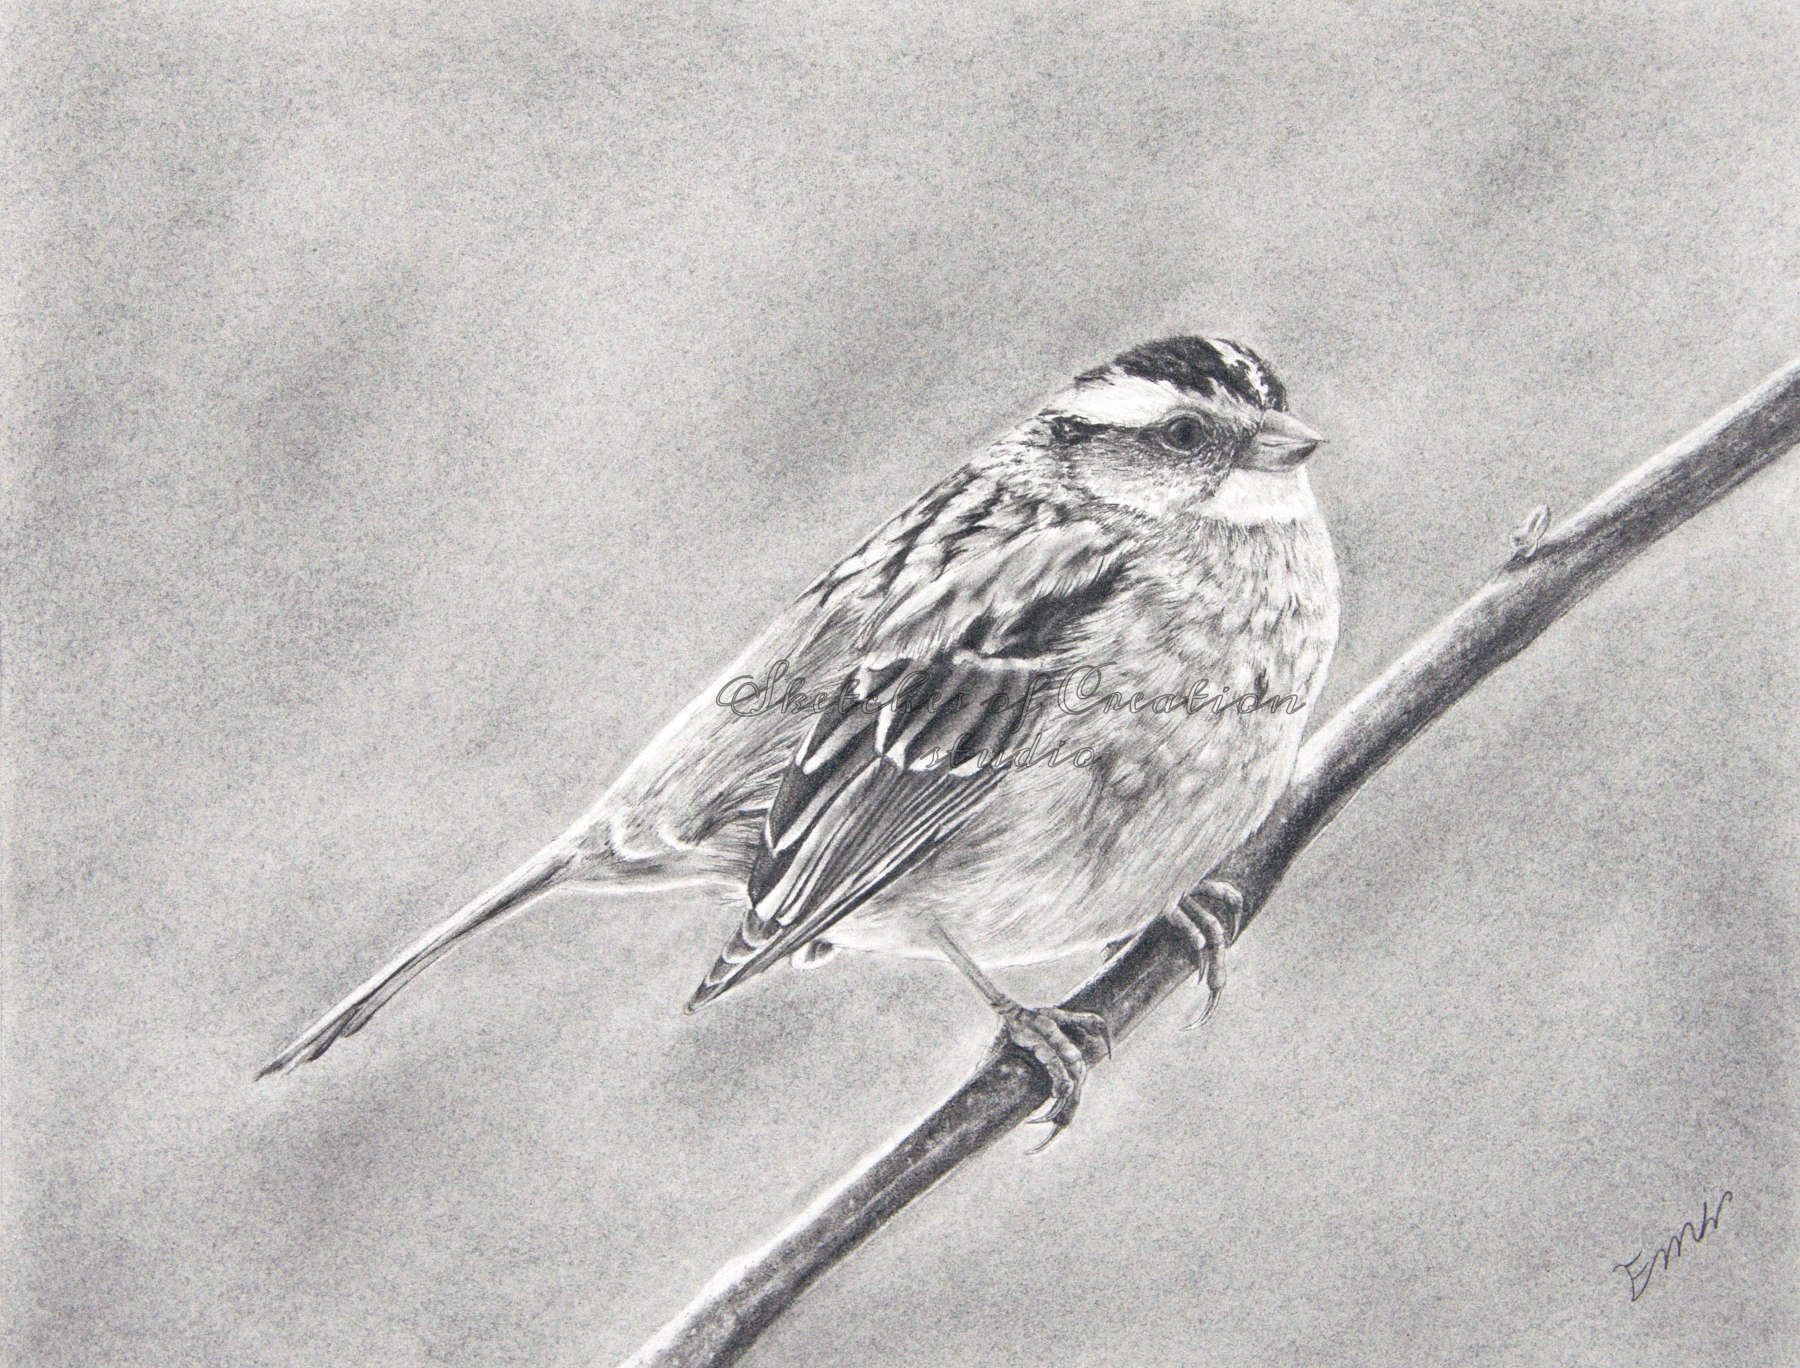 'Sparrow' a drawing of a white-throated sparrow. 8x10 inches. Completed April 2020